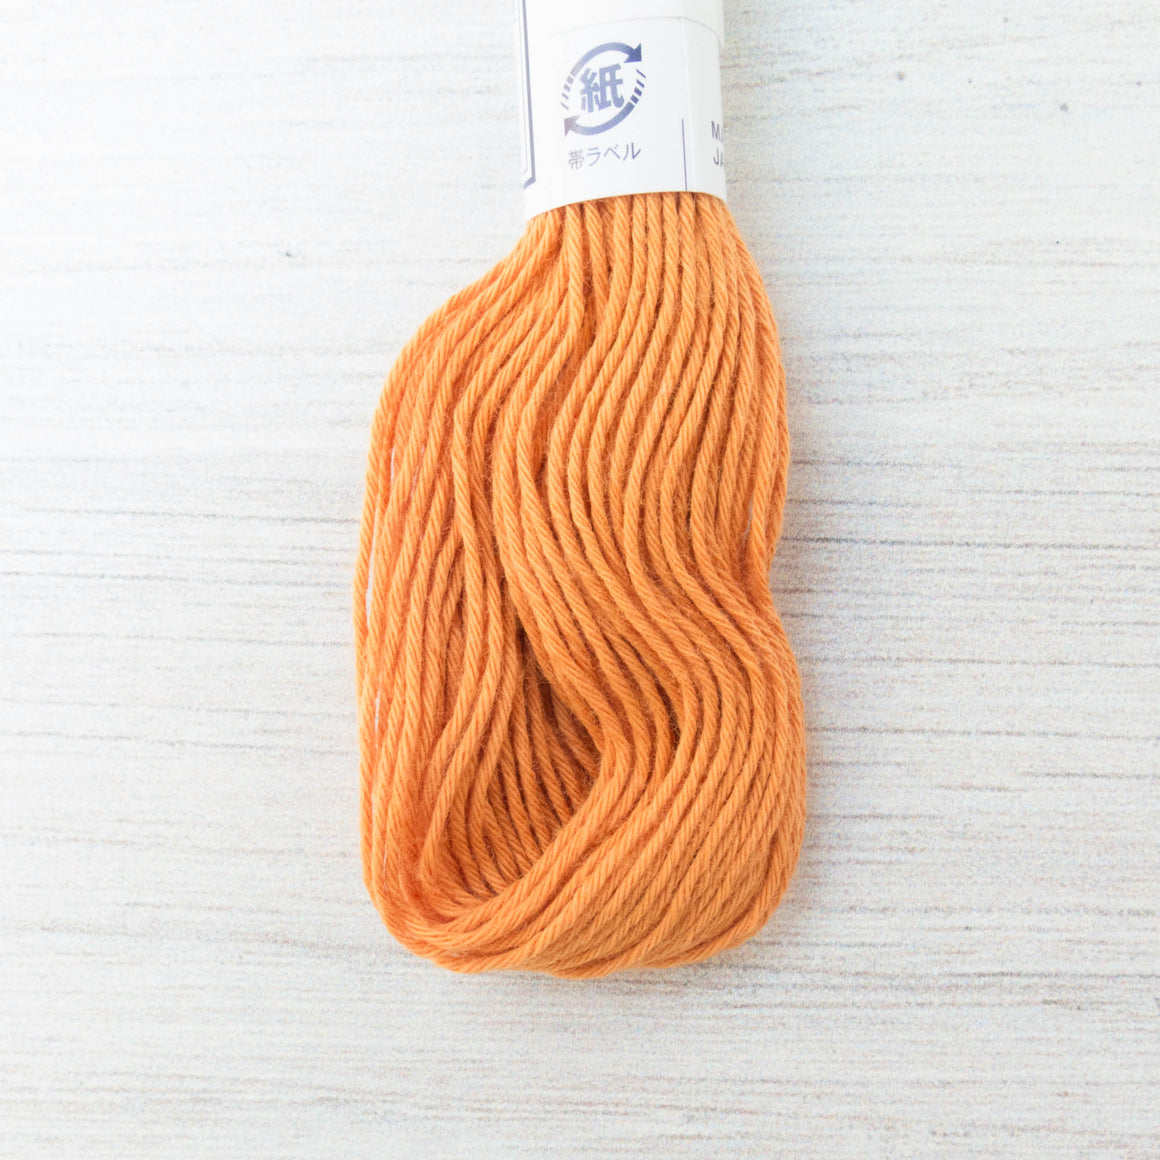 Japanese Olympus Sashiko Thread - Carrot Orange (#4) Sashiko - Snuggly Monkey